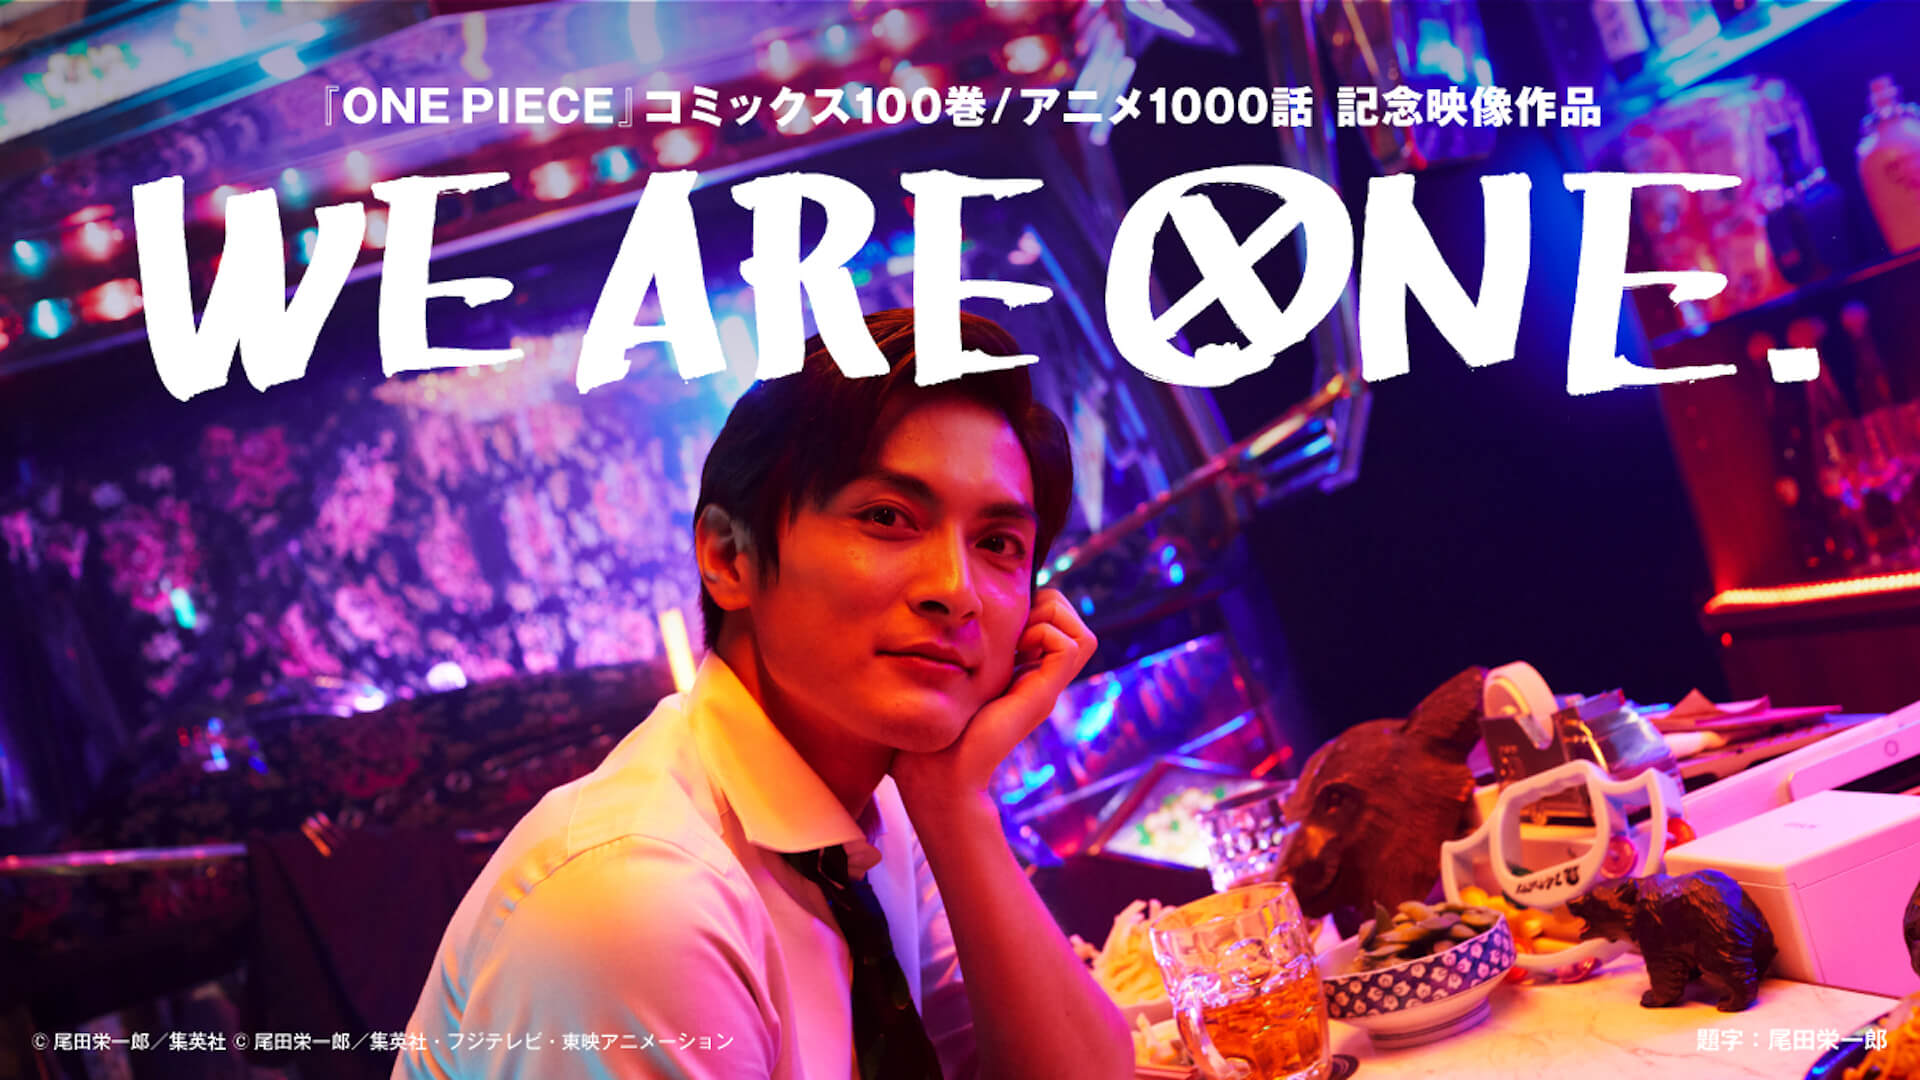 『ONE PIECE』コミックス100巻&アニメ1000話記念!実写×アニメの豪華映像作品『WE ARE ONE.』プロジェクトが解禁 art210722_radwimps_onepiece_6